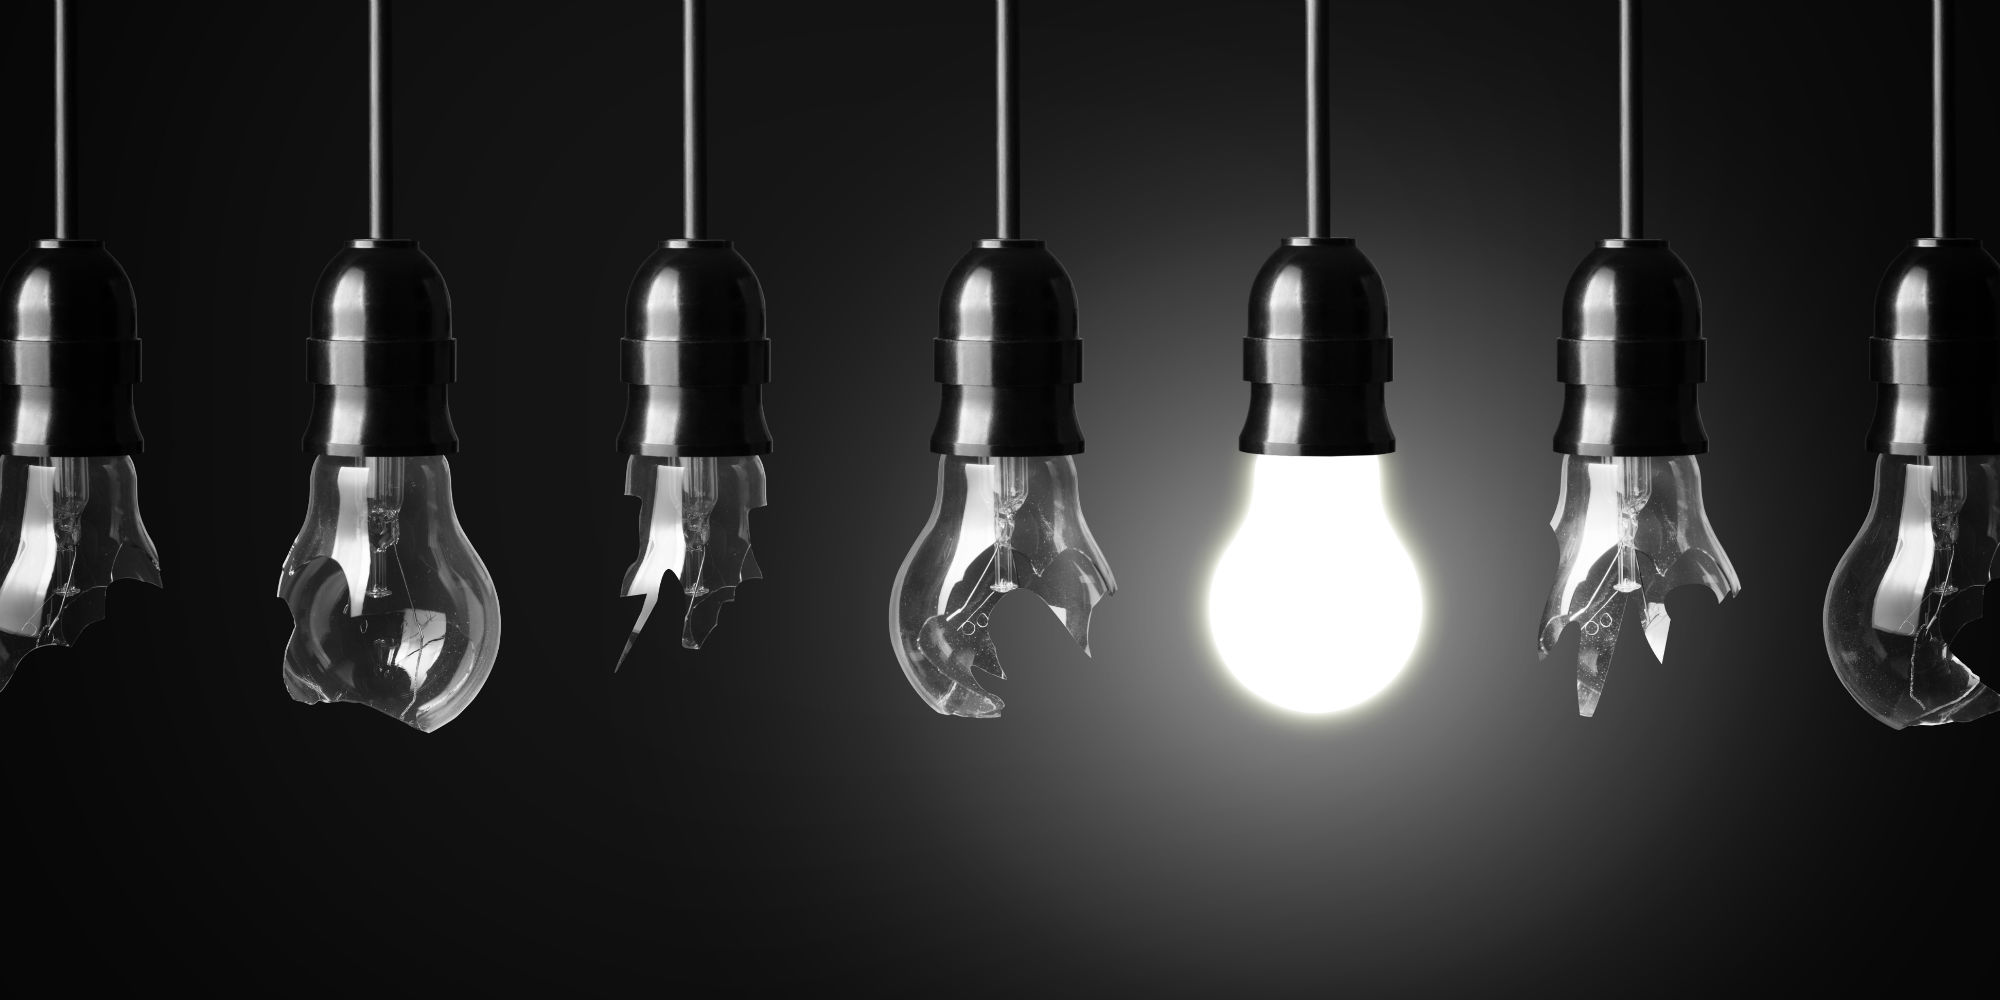 hackers could take control of your smart light bulbs and cau